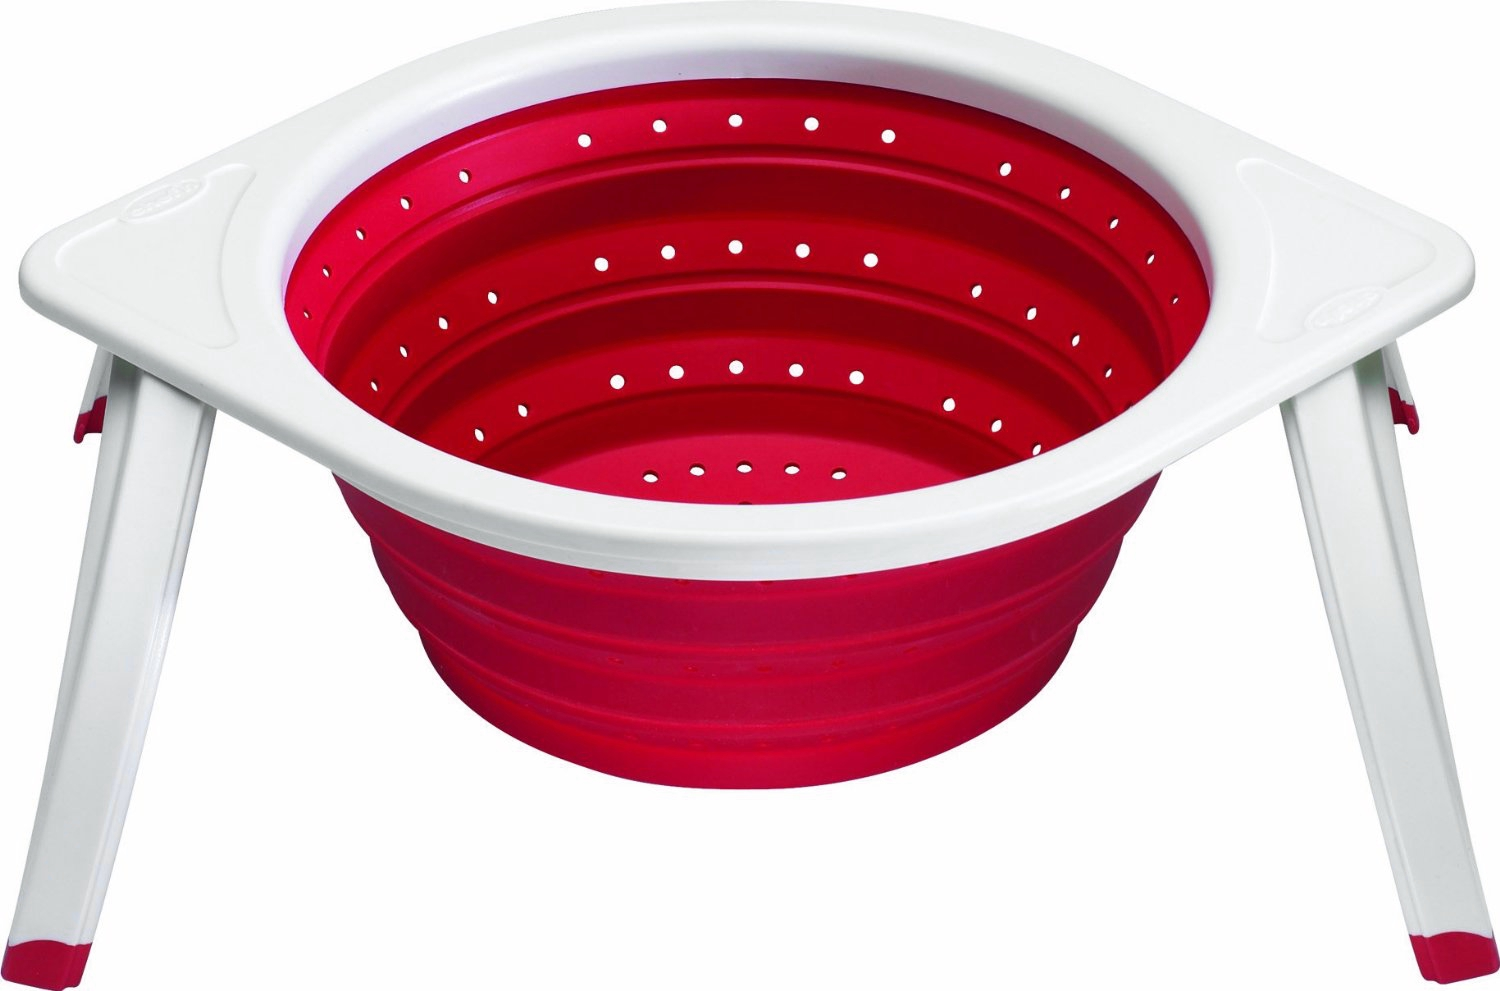 Chef'N Sleekstor Cherry Red and White Large Collapsible Colander, 11 Inch